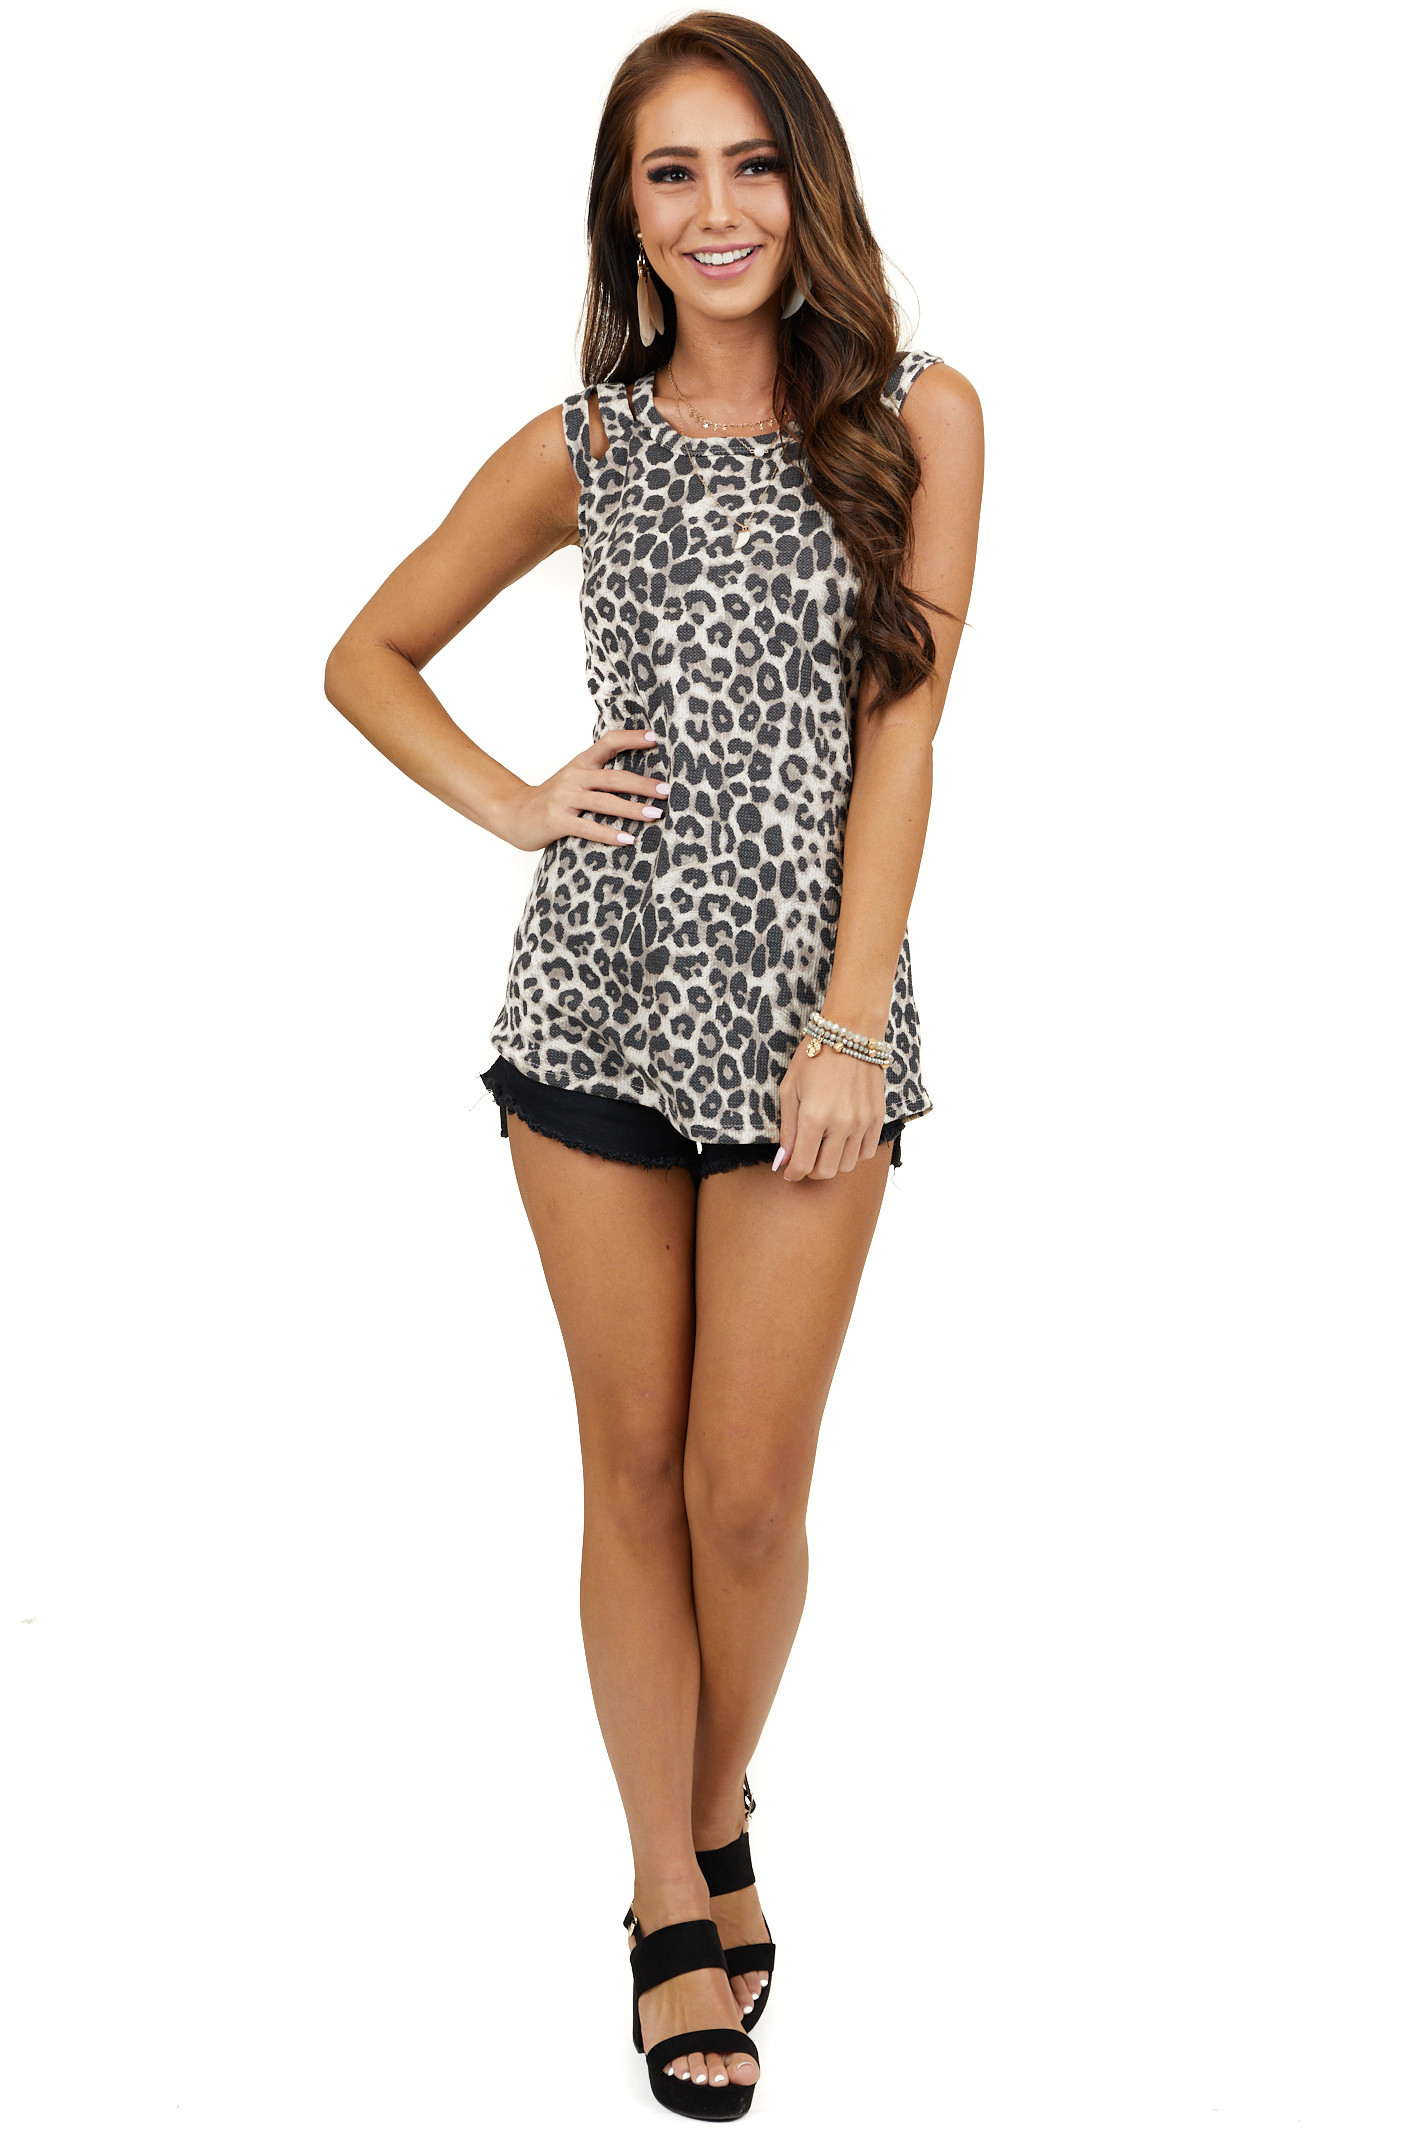 Latte Leopard Sleeveless Top with Criss Cross Strap Details